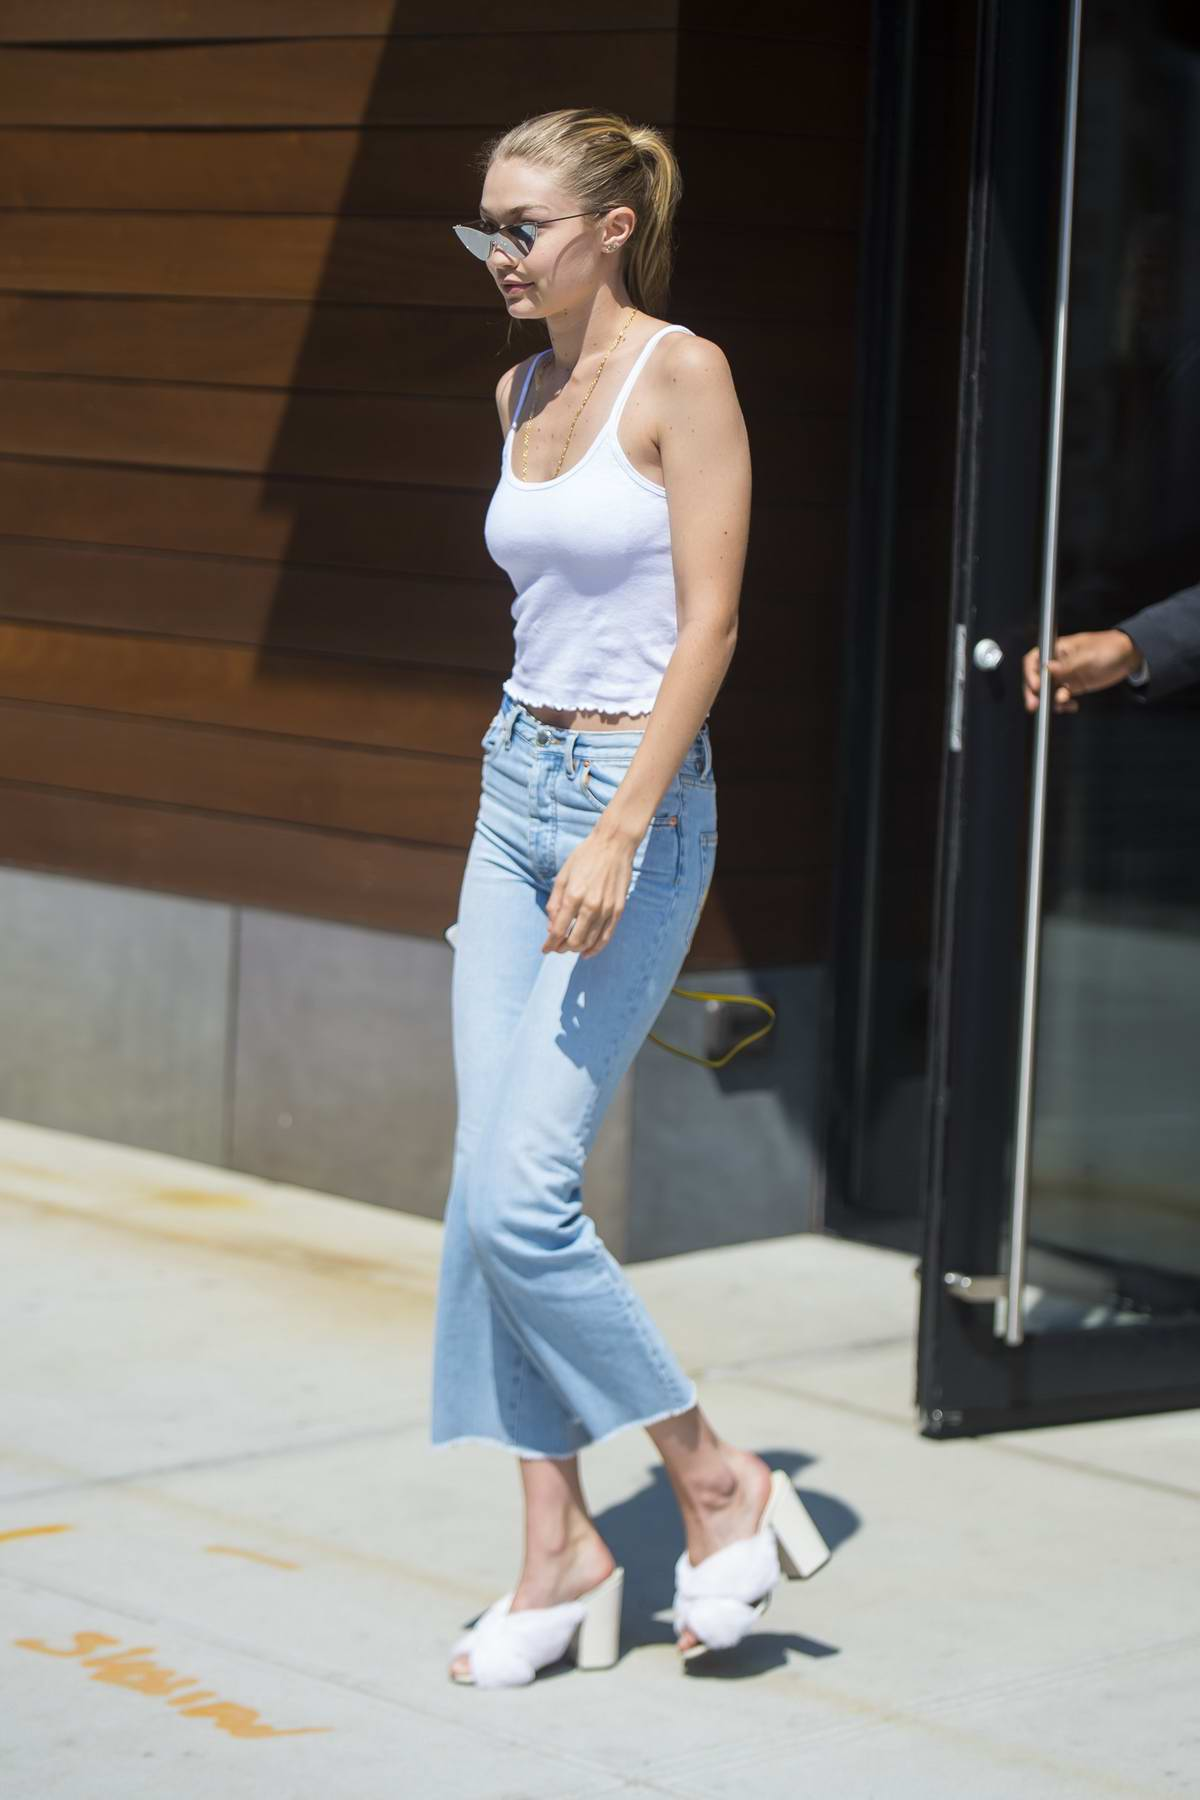 83836c5f gigi hadid spotted wearing a white tank top and jeans and furry slippers  while leaving her apartment in new york city-050917_5